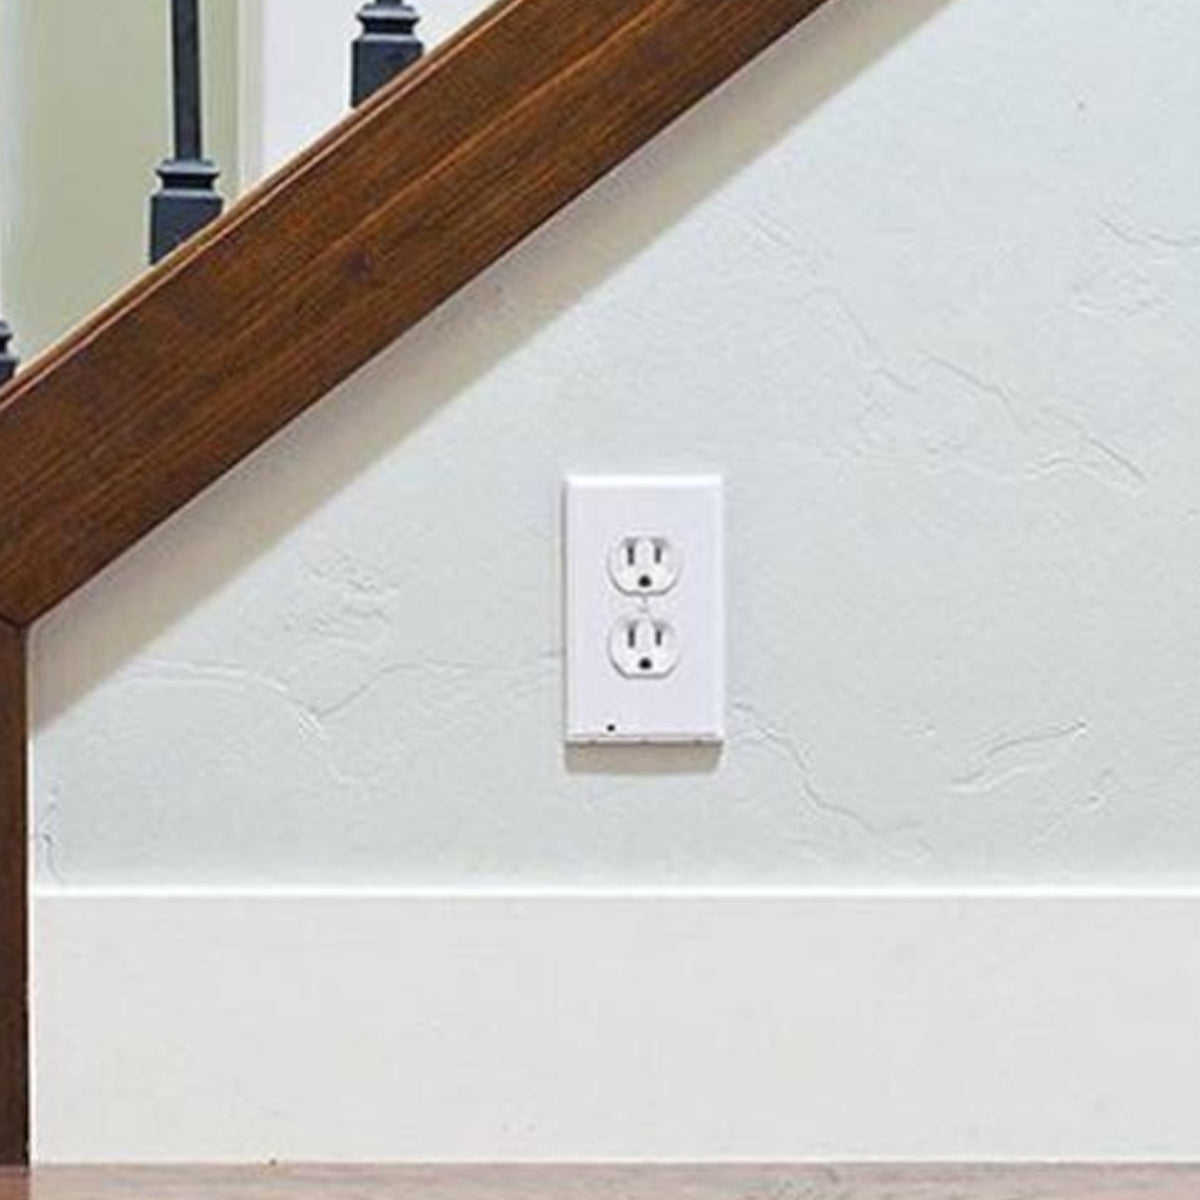 shopify-Path Lighter Auto Motion Wall Plate LED Light  2- PACK-8